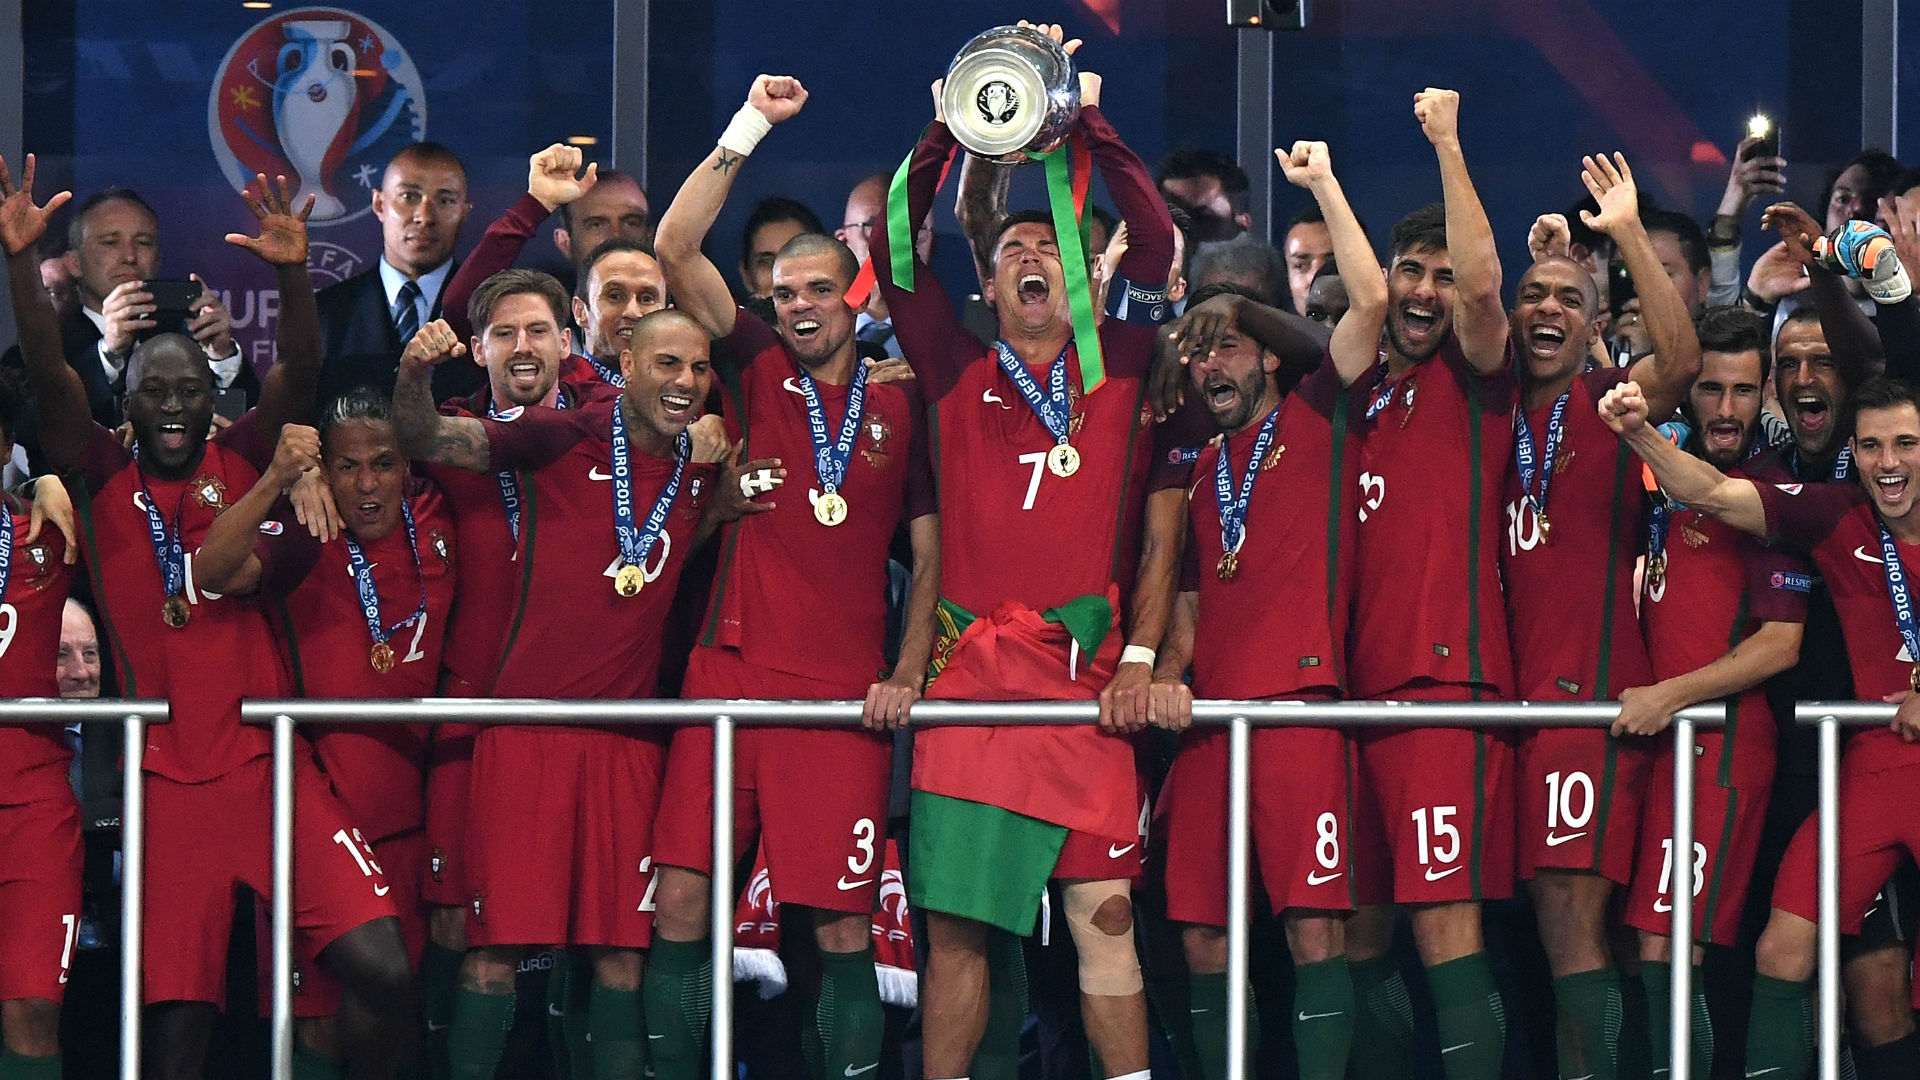 France Portugal Euro 2020 Calendrier.Euro 2020 Hosts Qualifiers Your Guide To The New Look